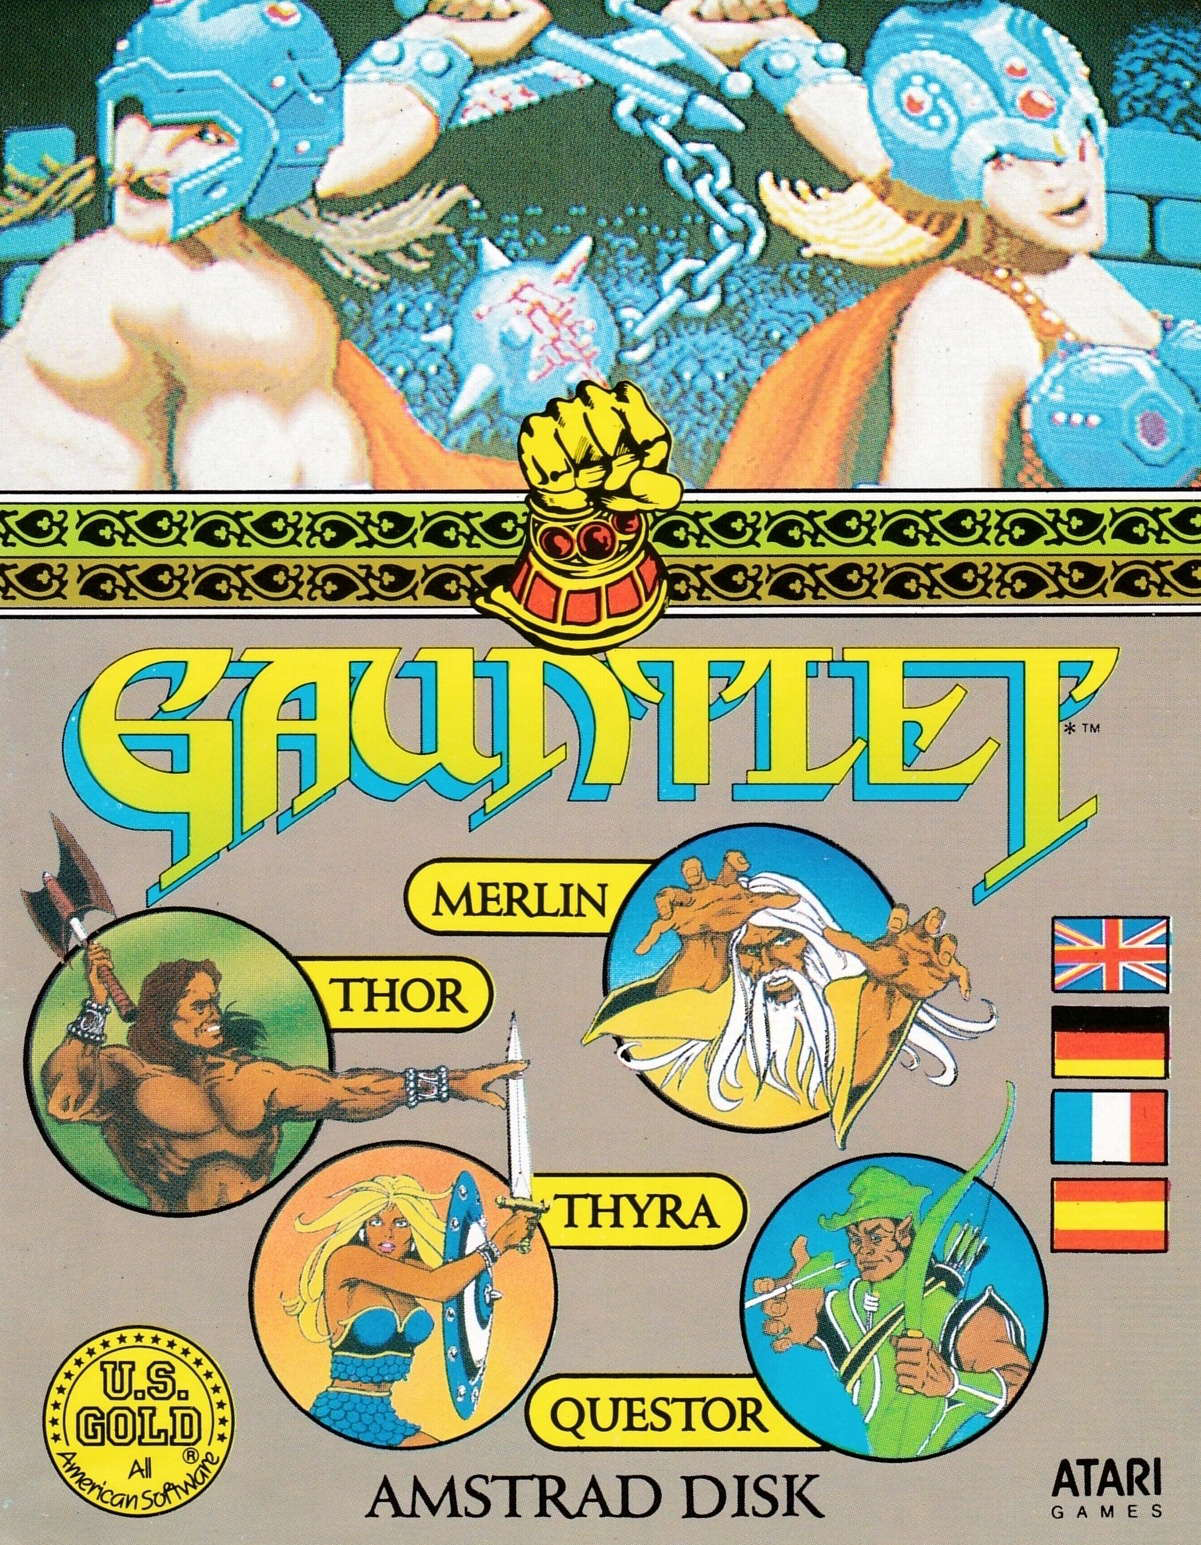 cover of the Amstrad CPC game Gauntlet  by GameBase CPC